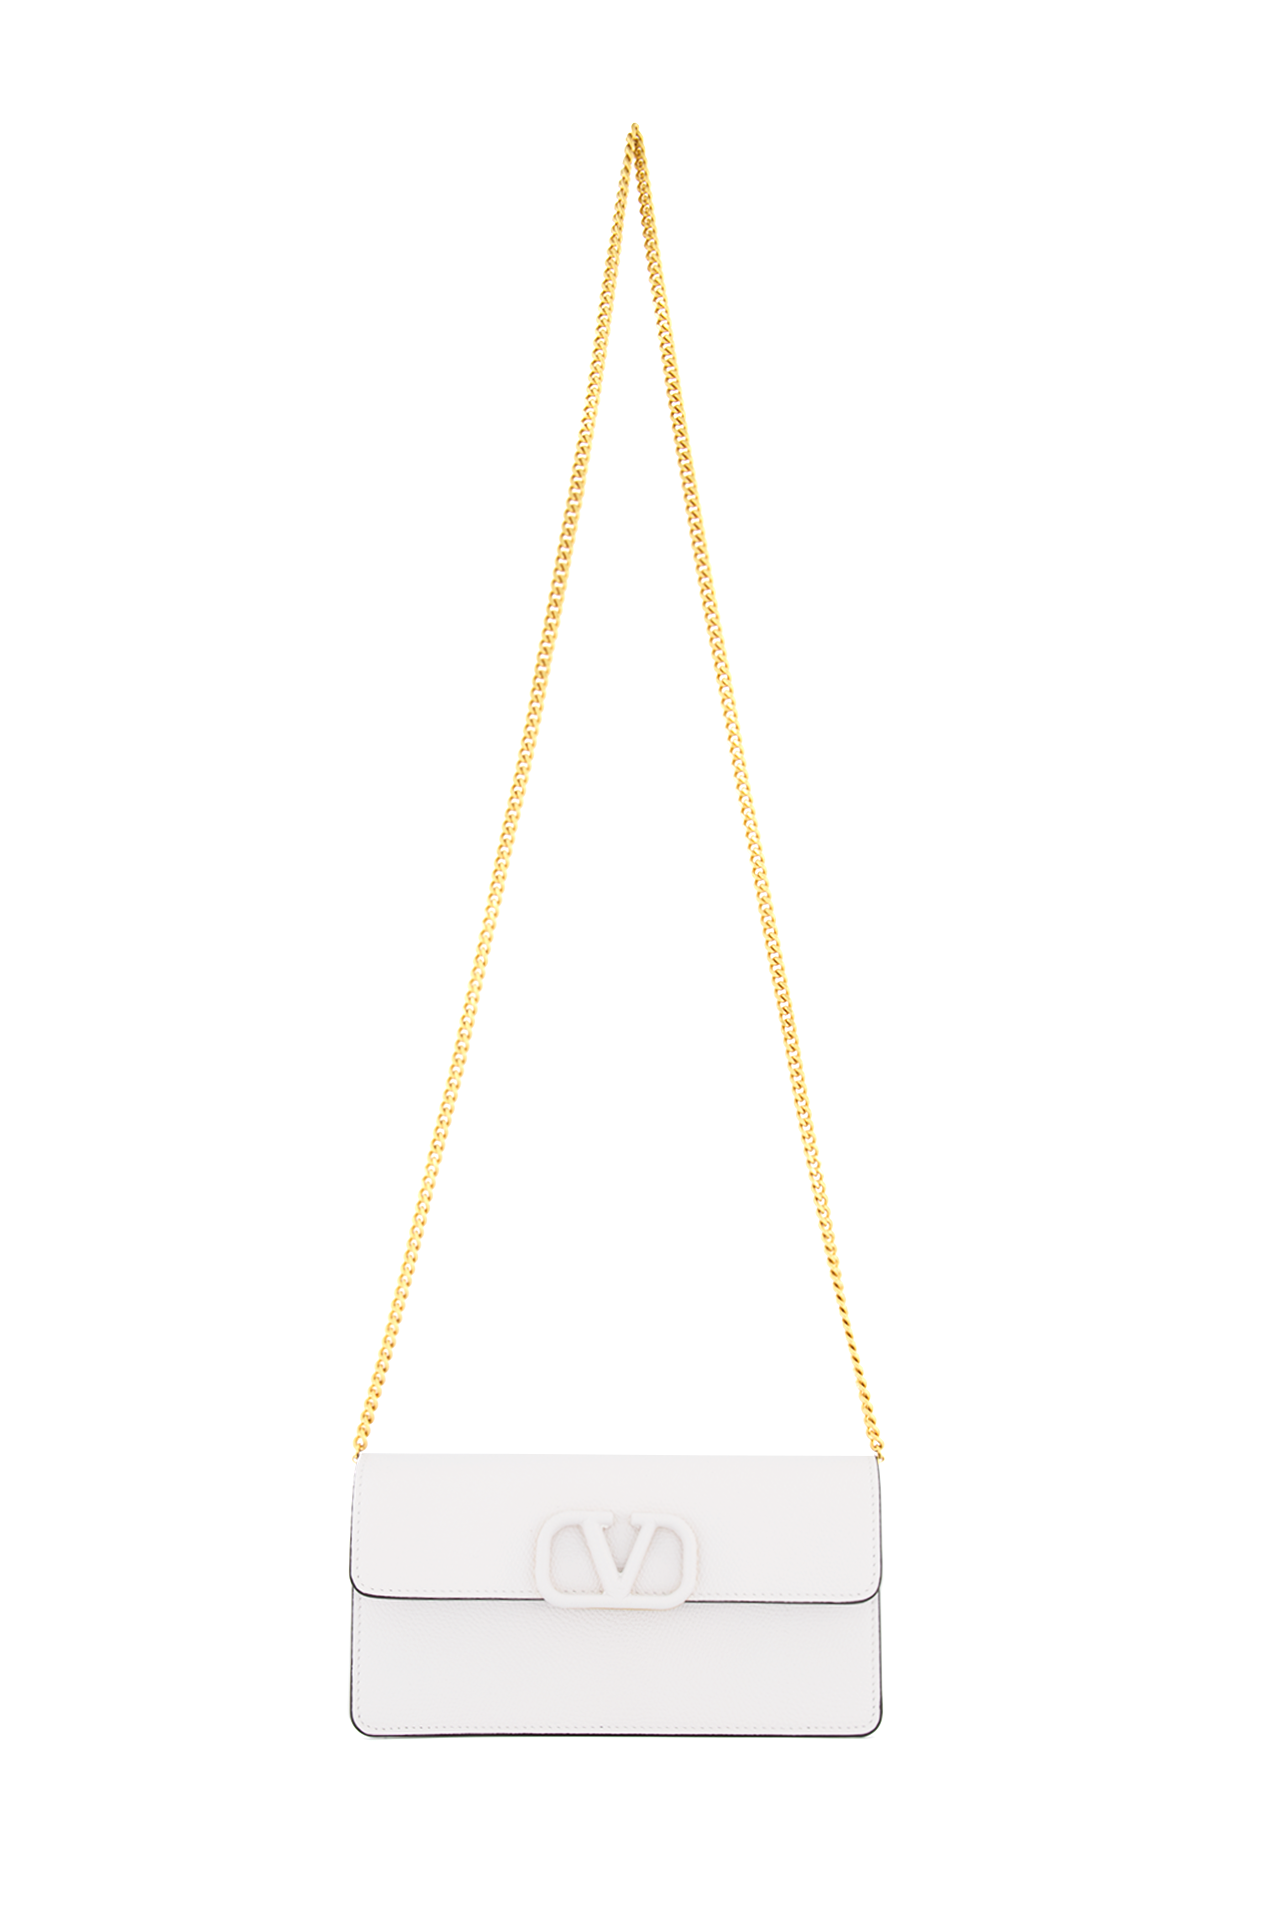 VLOGO Signature Wallet On Chain